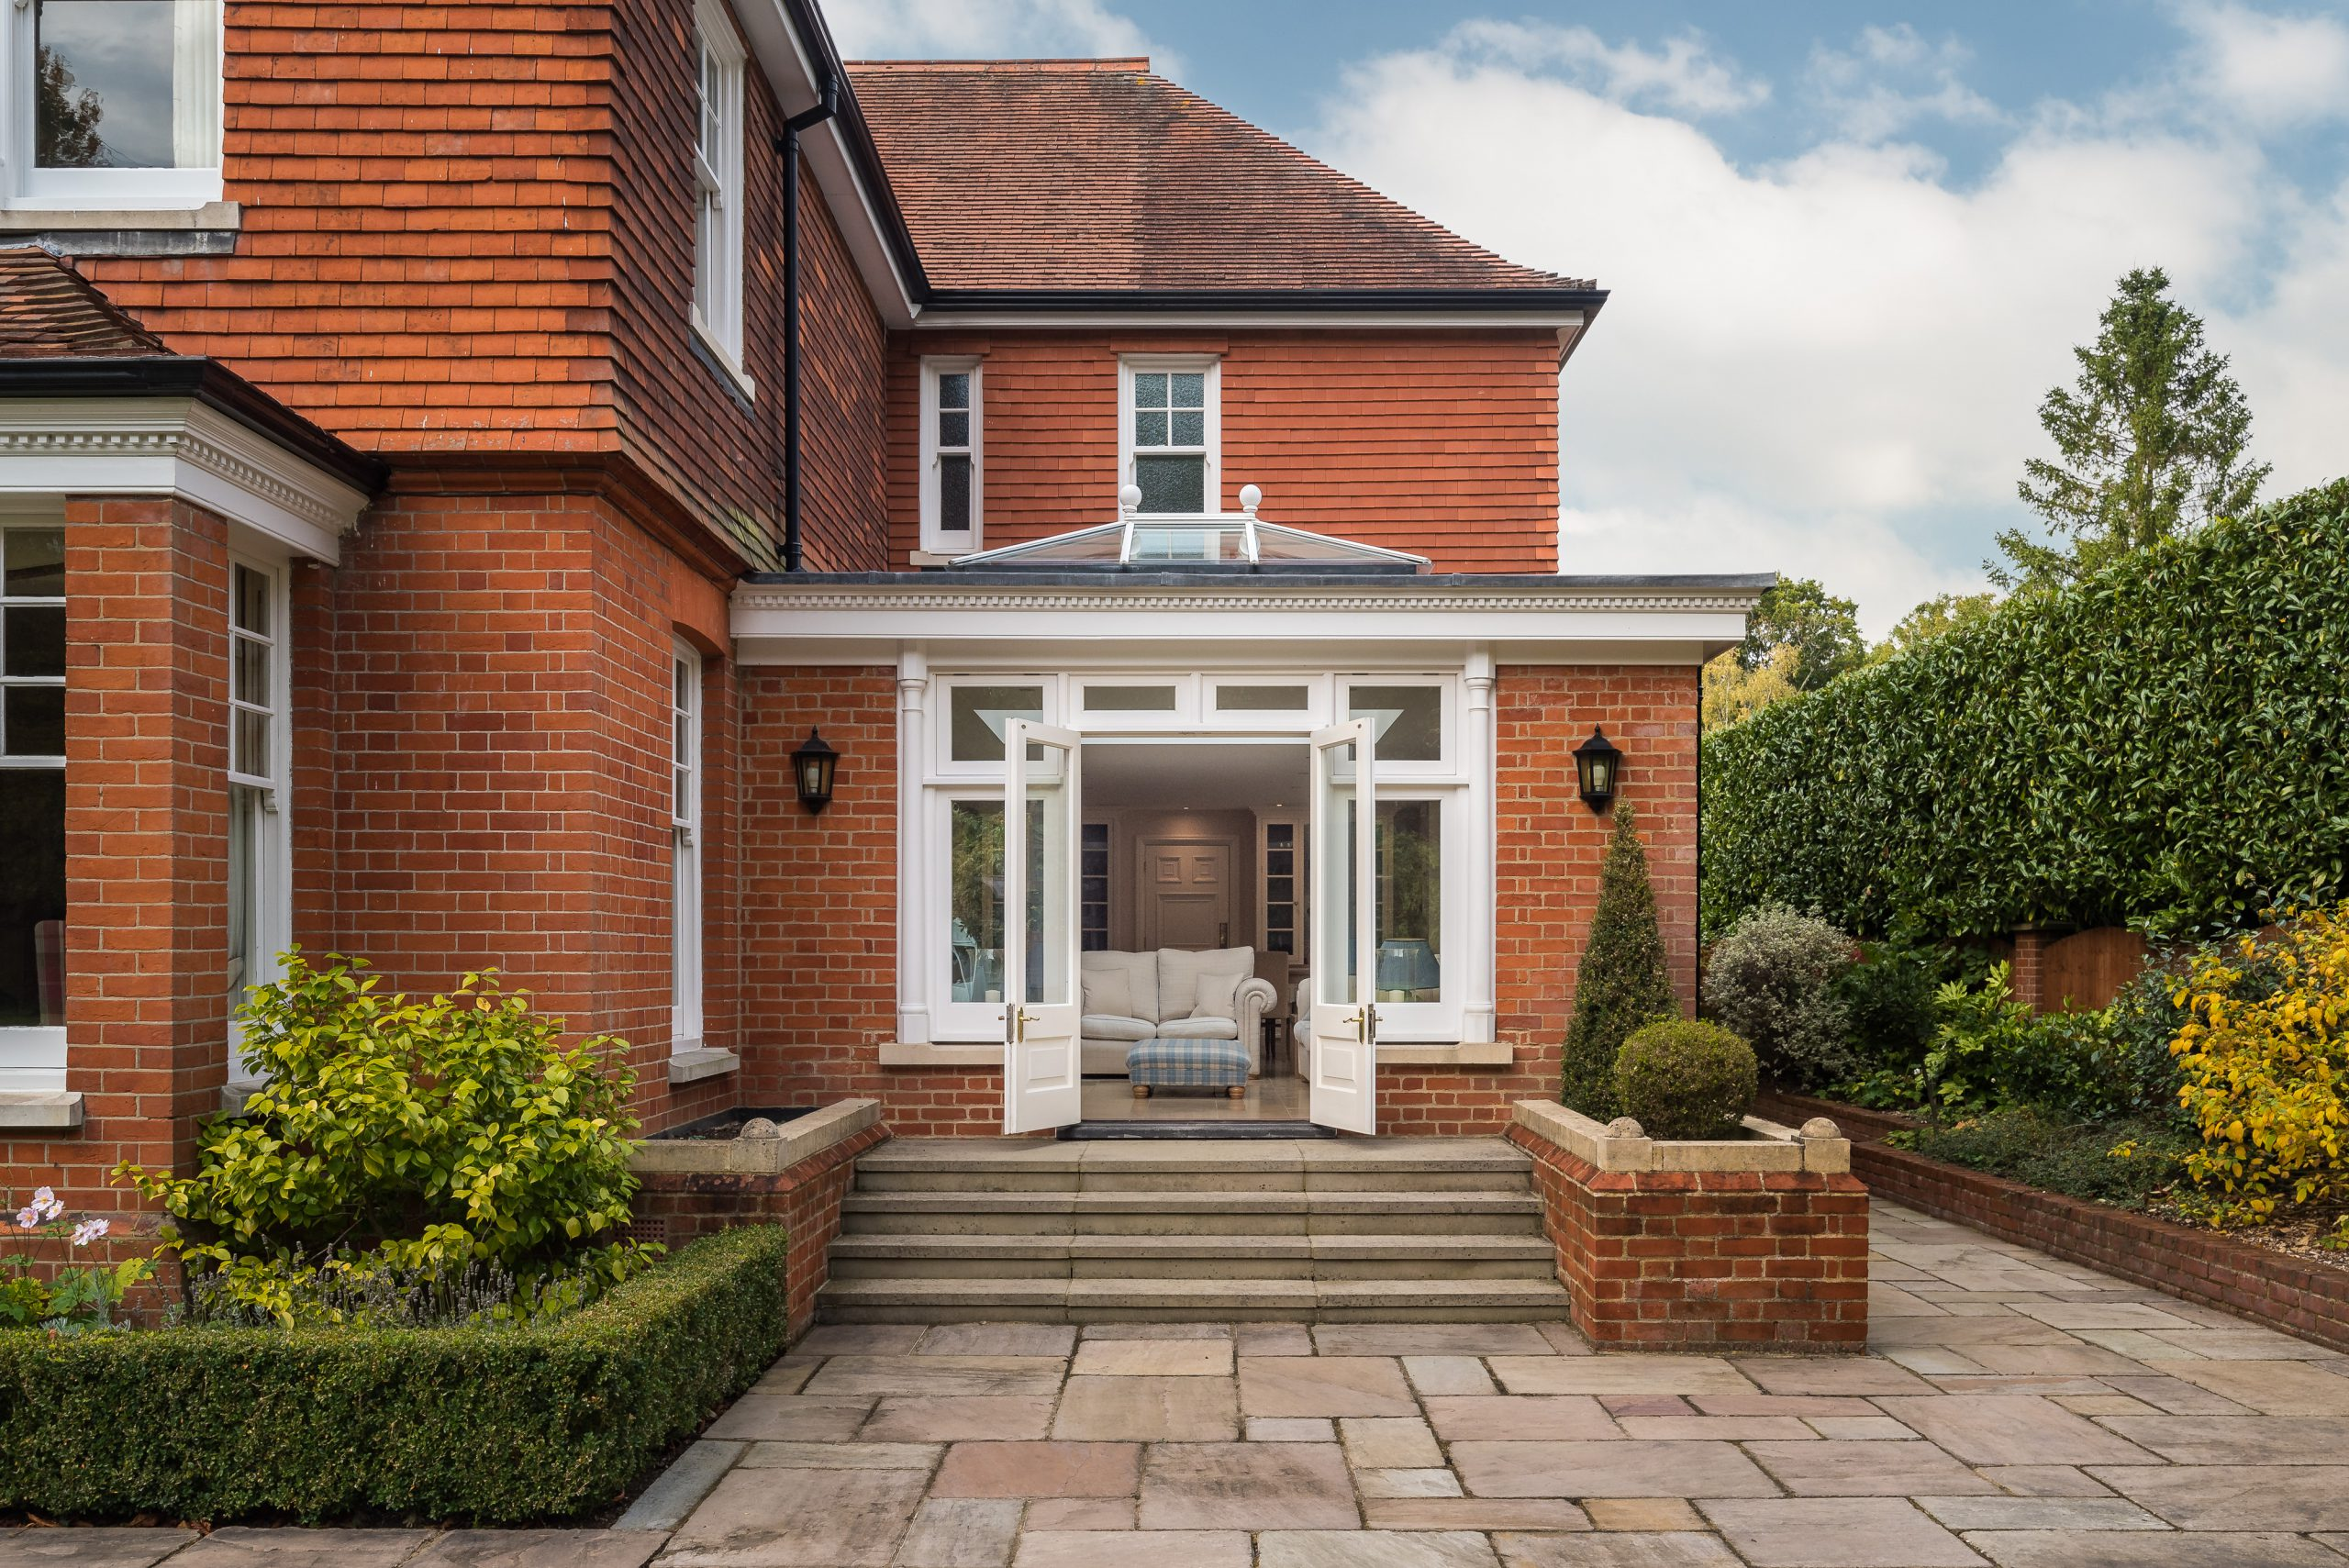 Orangery Extension on House